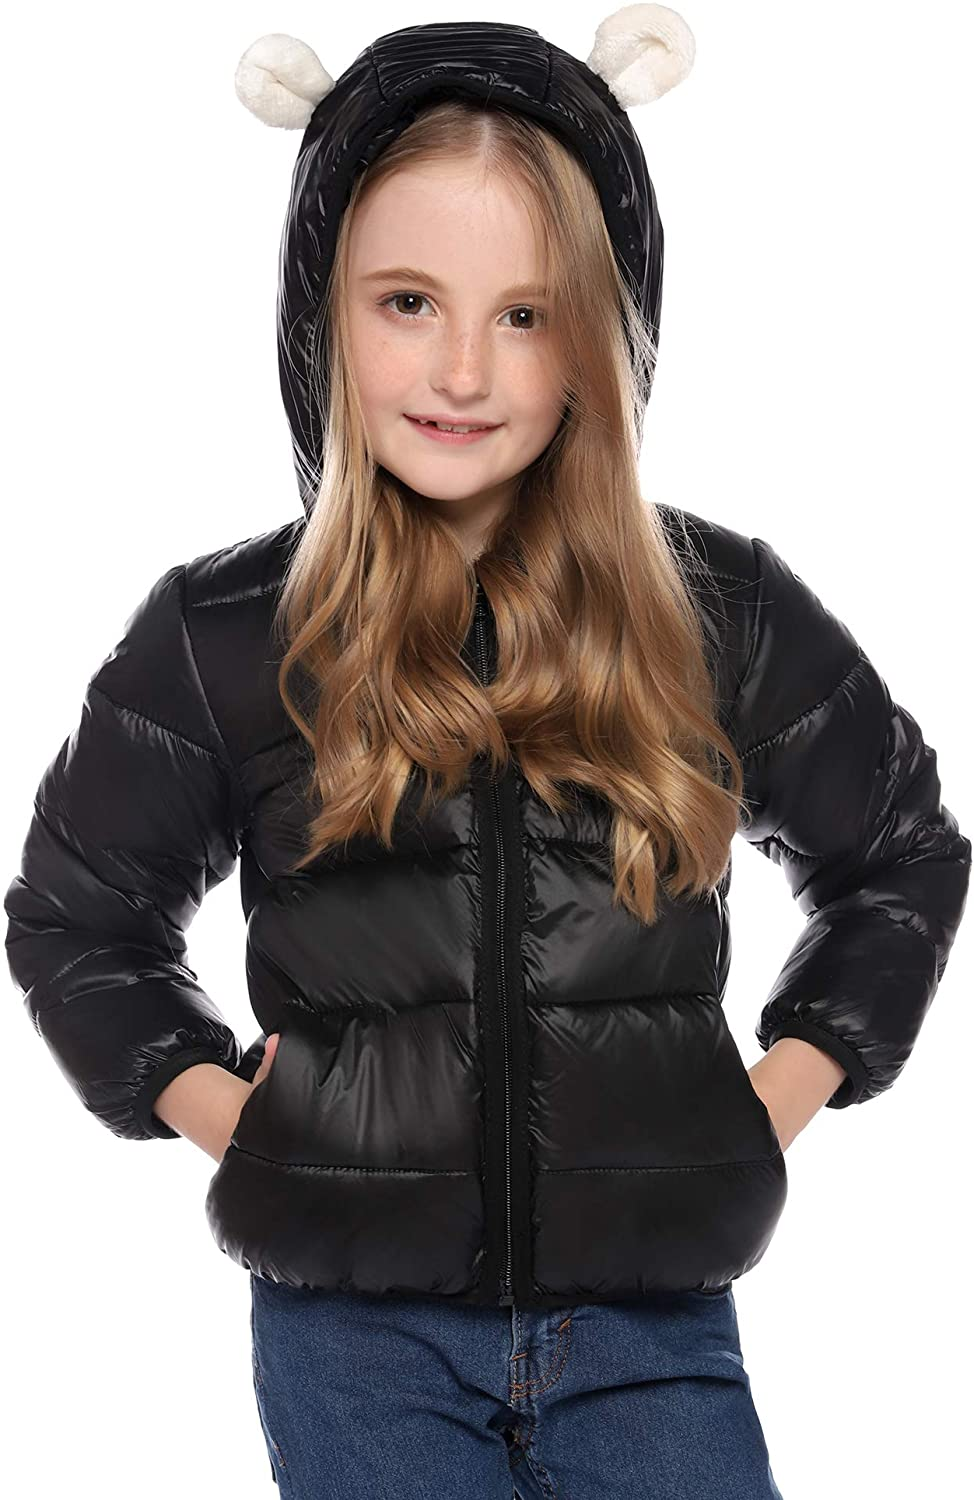 Hawiton Girls Down Coats Kids Girl Winter Warm Hooded Down Jacket Packable Lightweight Cute Puffer Jacket with Pocket